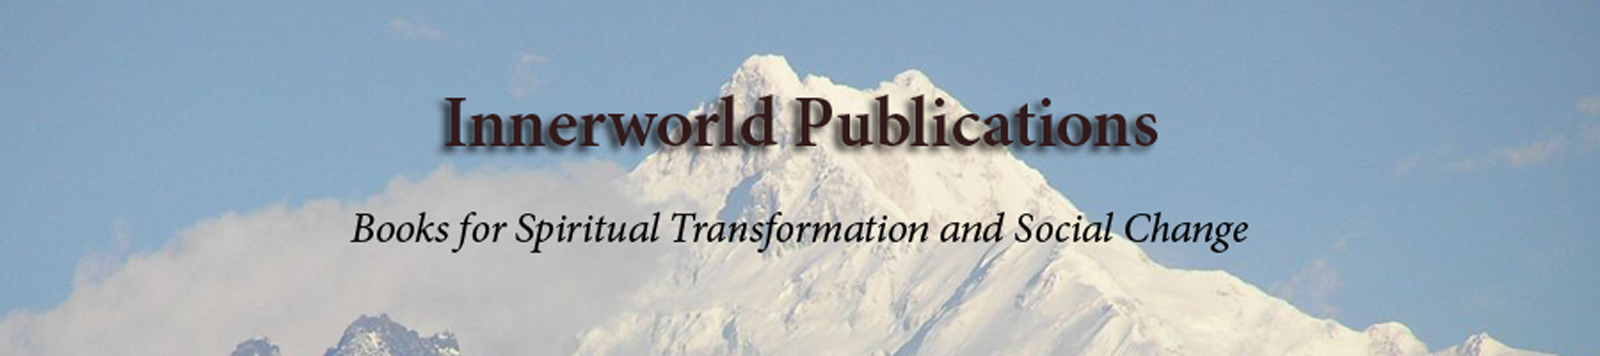 Innerworld Publications Logo